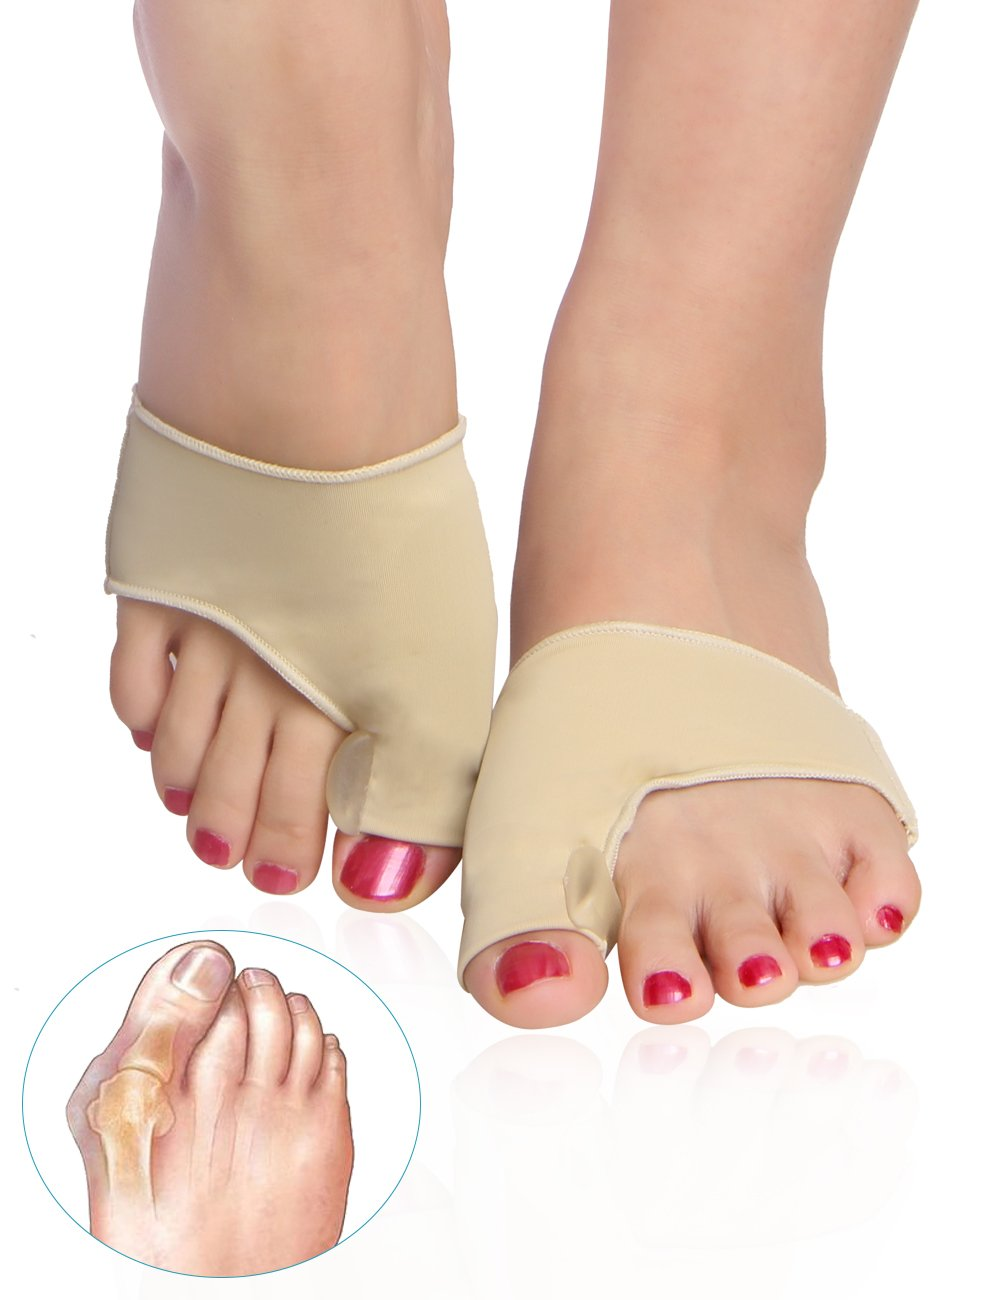 Bunion Corrector and Bunion Relief Protector Sleeves Kit with Gel Pad Treat Pain in Hallux Valgus, Big Toe Joint, Hammer Toe (Large Size : Women: US 9-13.5/Men: US 7-13.5)